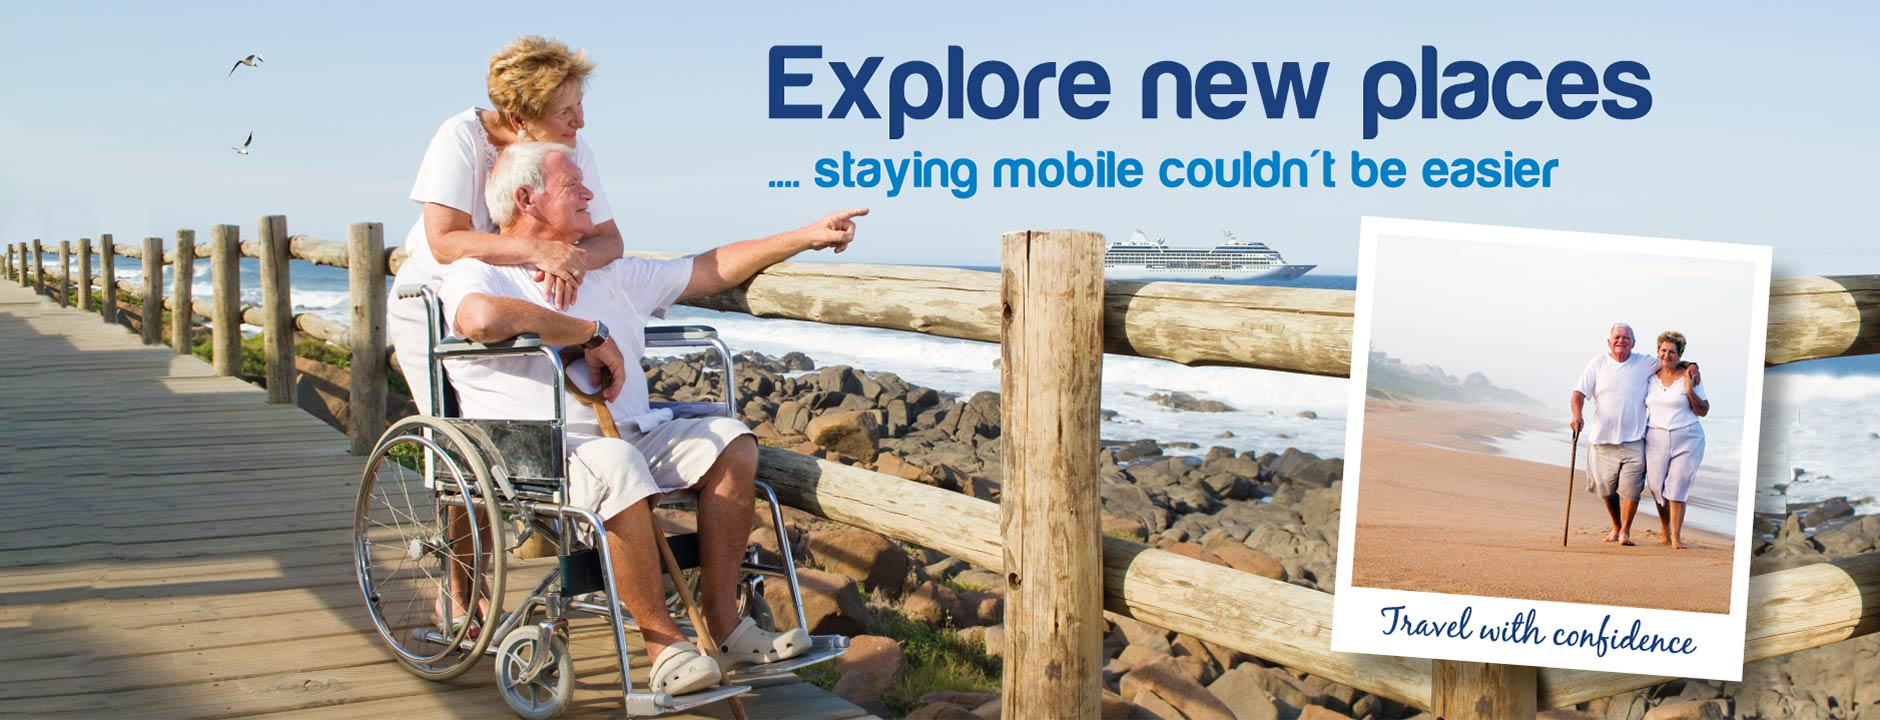 Explore new palces - staying mobile couldn't be easier